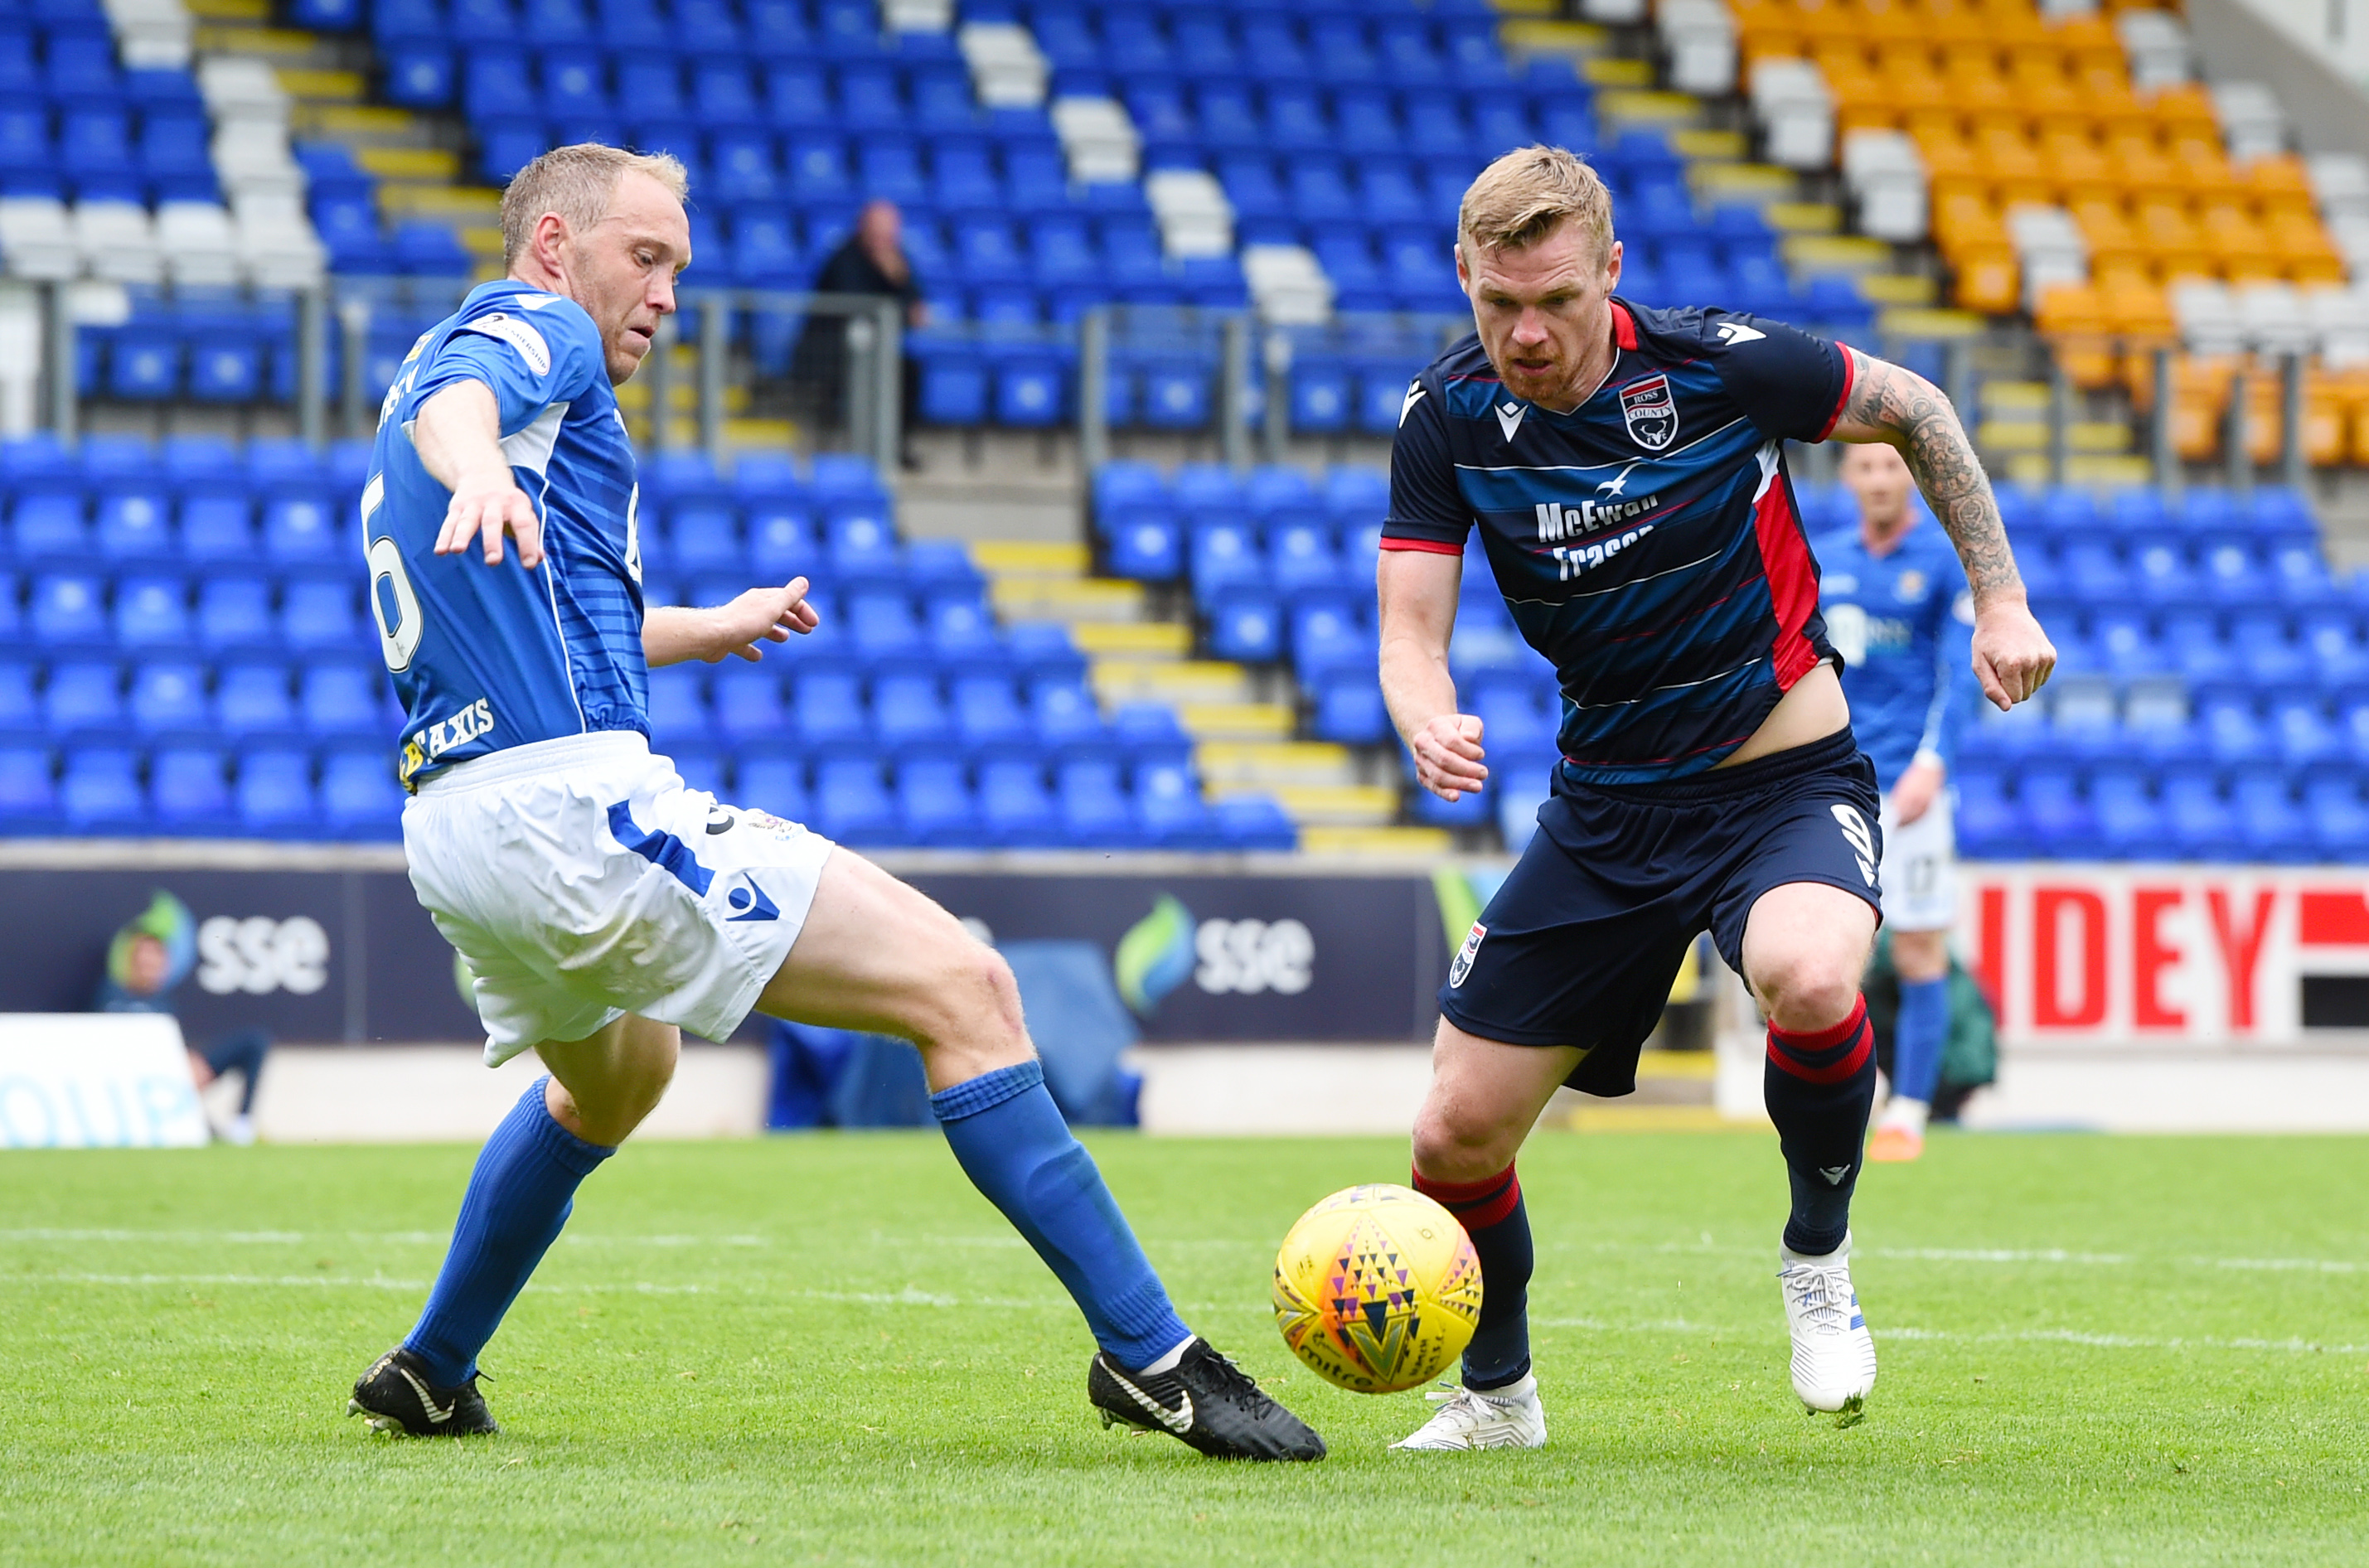 Billy McKay scored twice for Ross County at McDiarmid Park